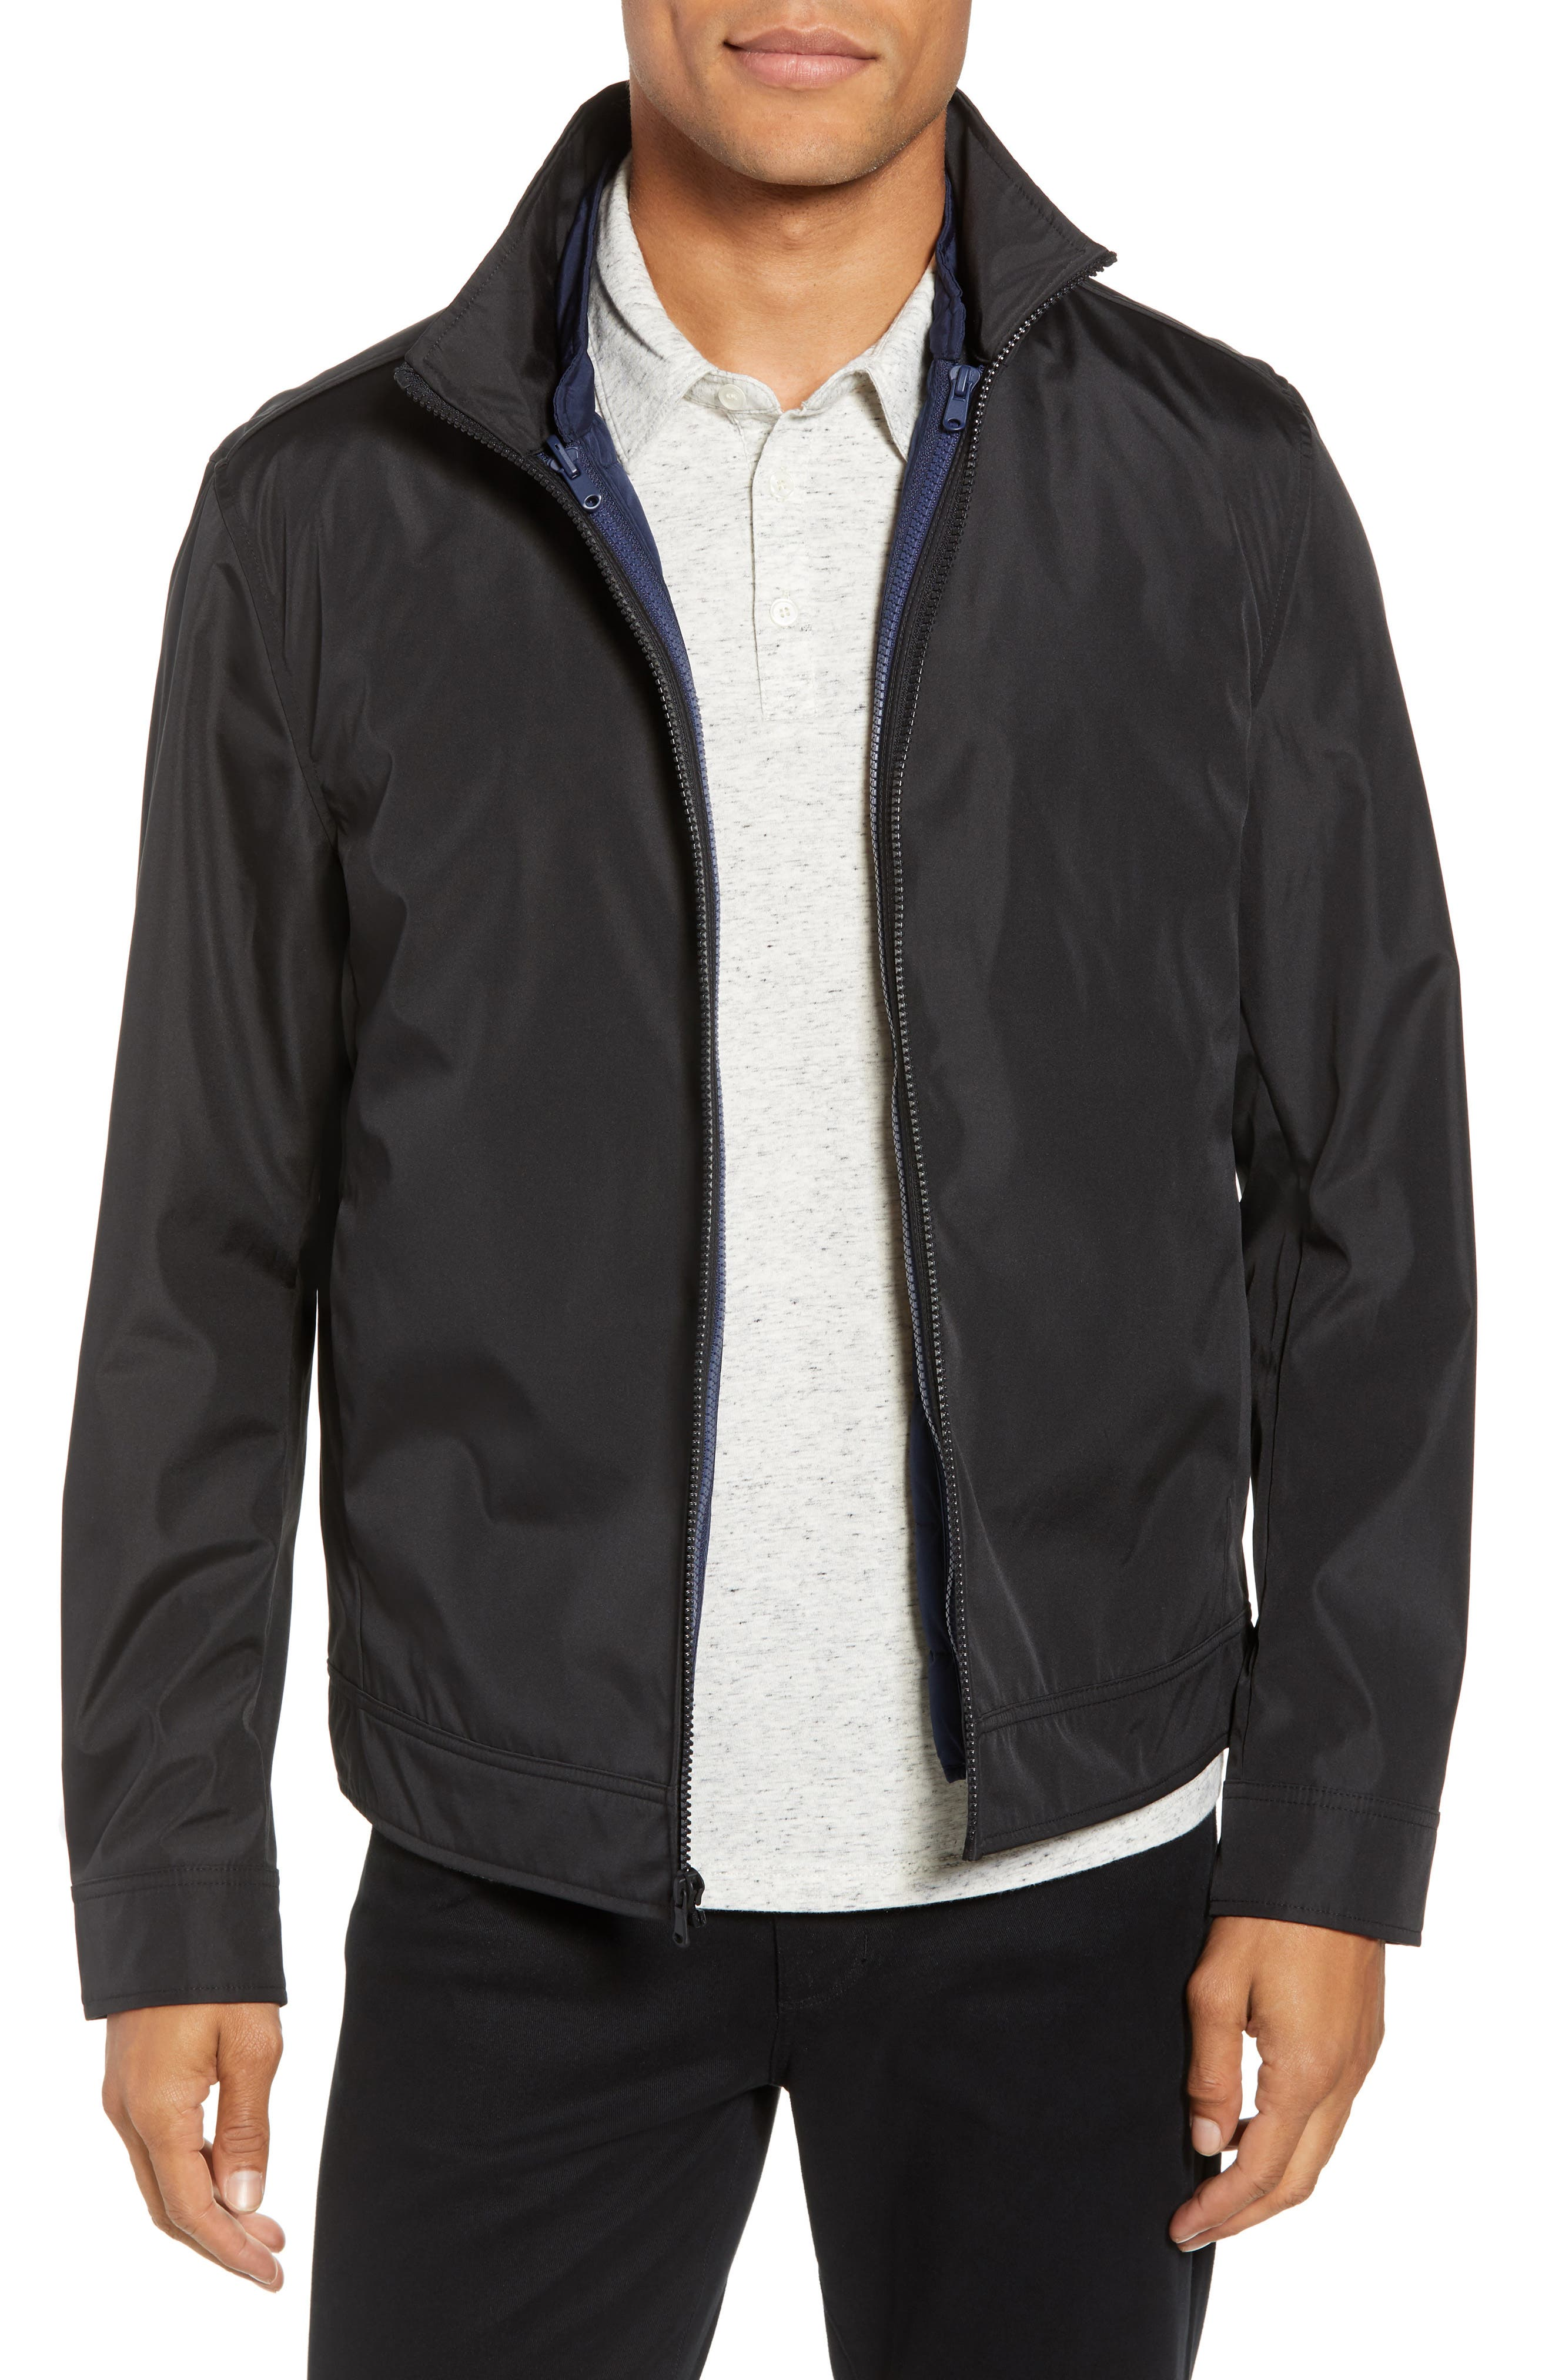 ZACHARY PRELL, Oxford 2-in-1 Jacket, Main thumbnail 1, color, BLACK